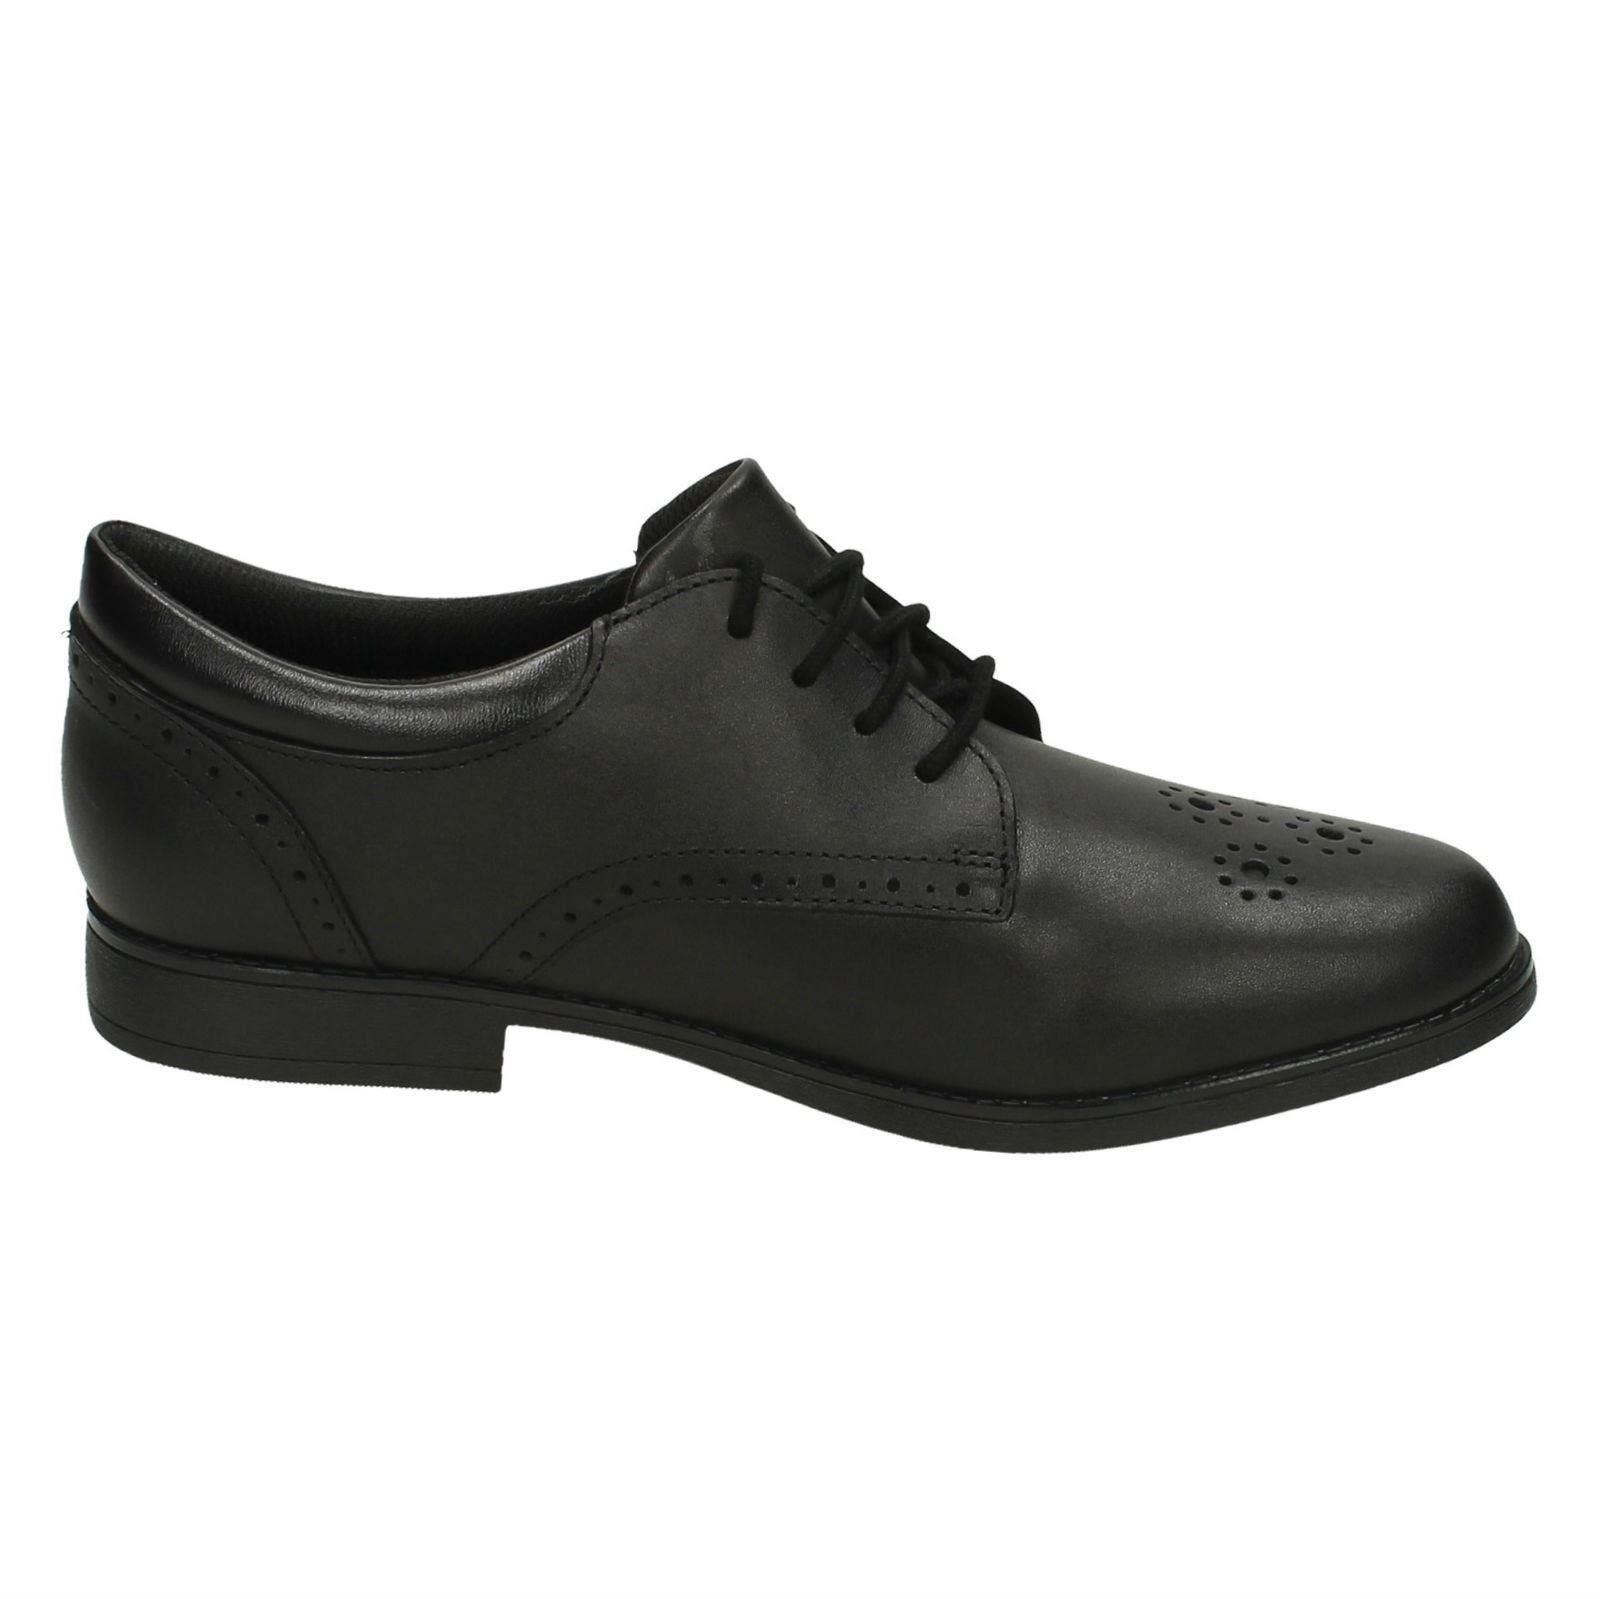 Fudge sami Por pirata Shoes Brogue Clarks Black Niñas Gtx School PHq74xx